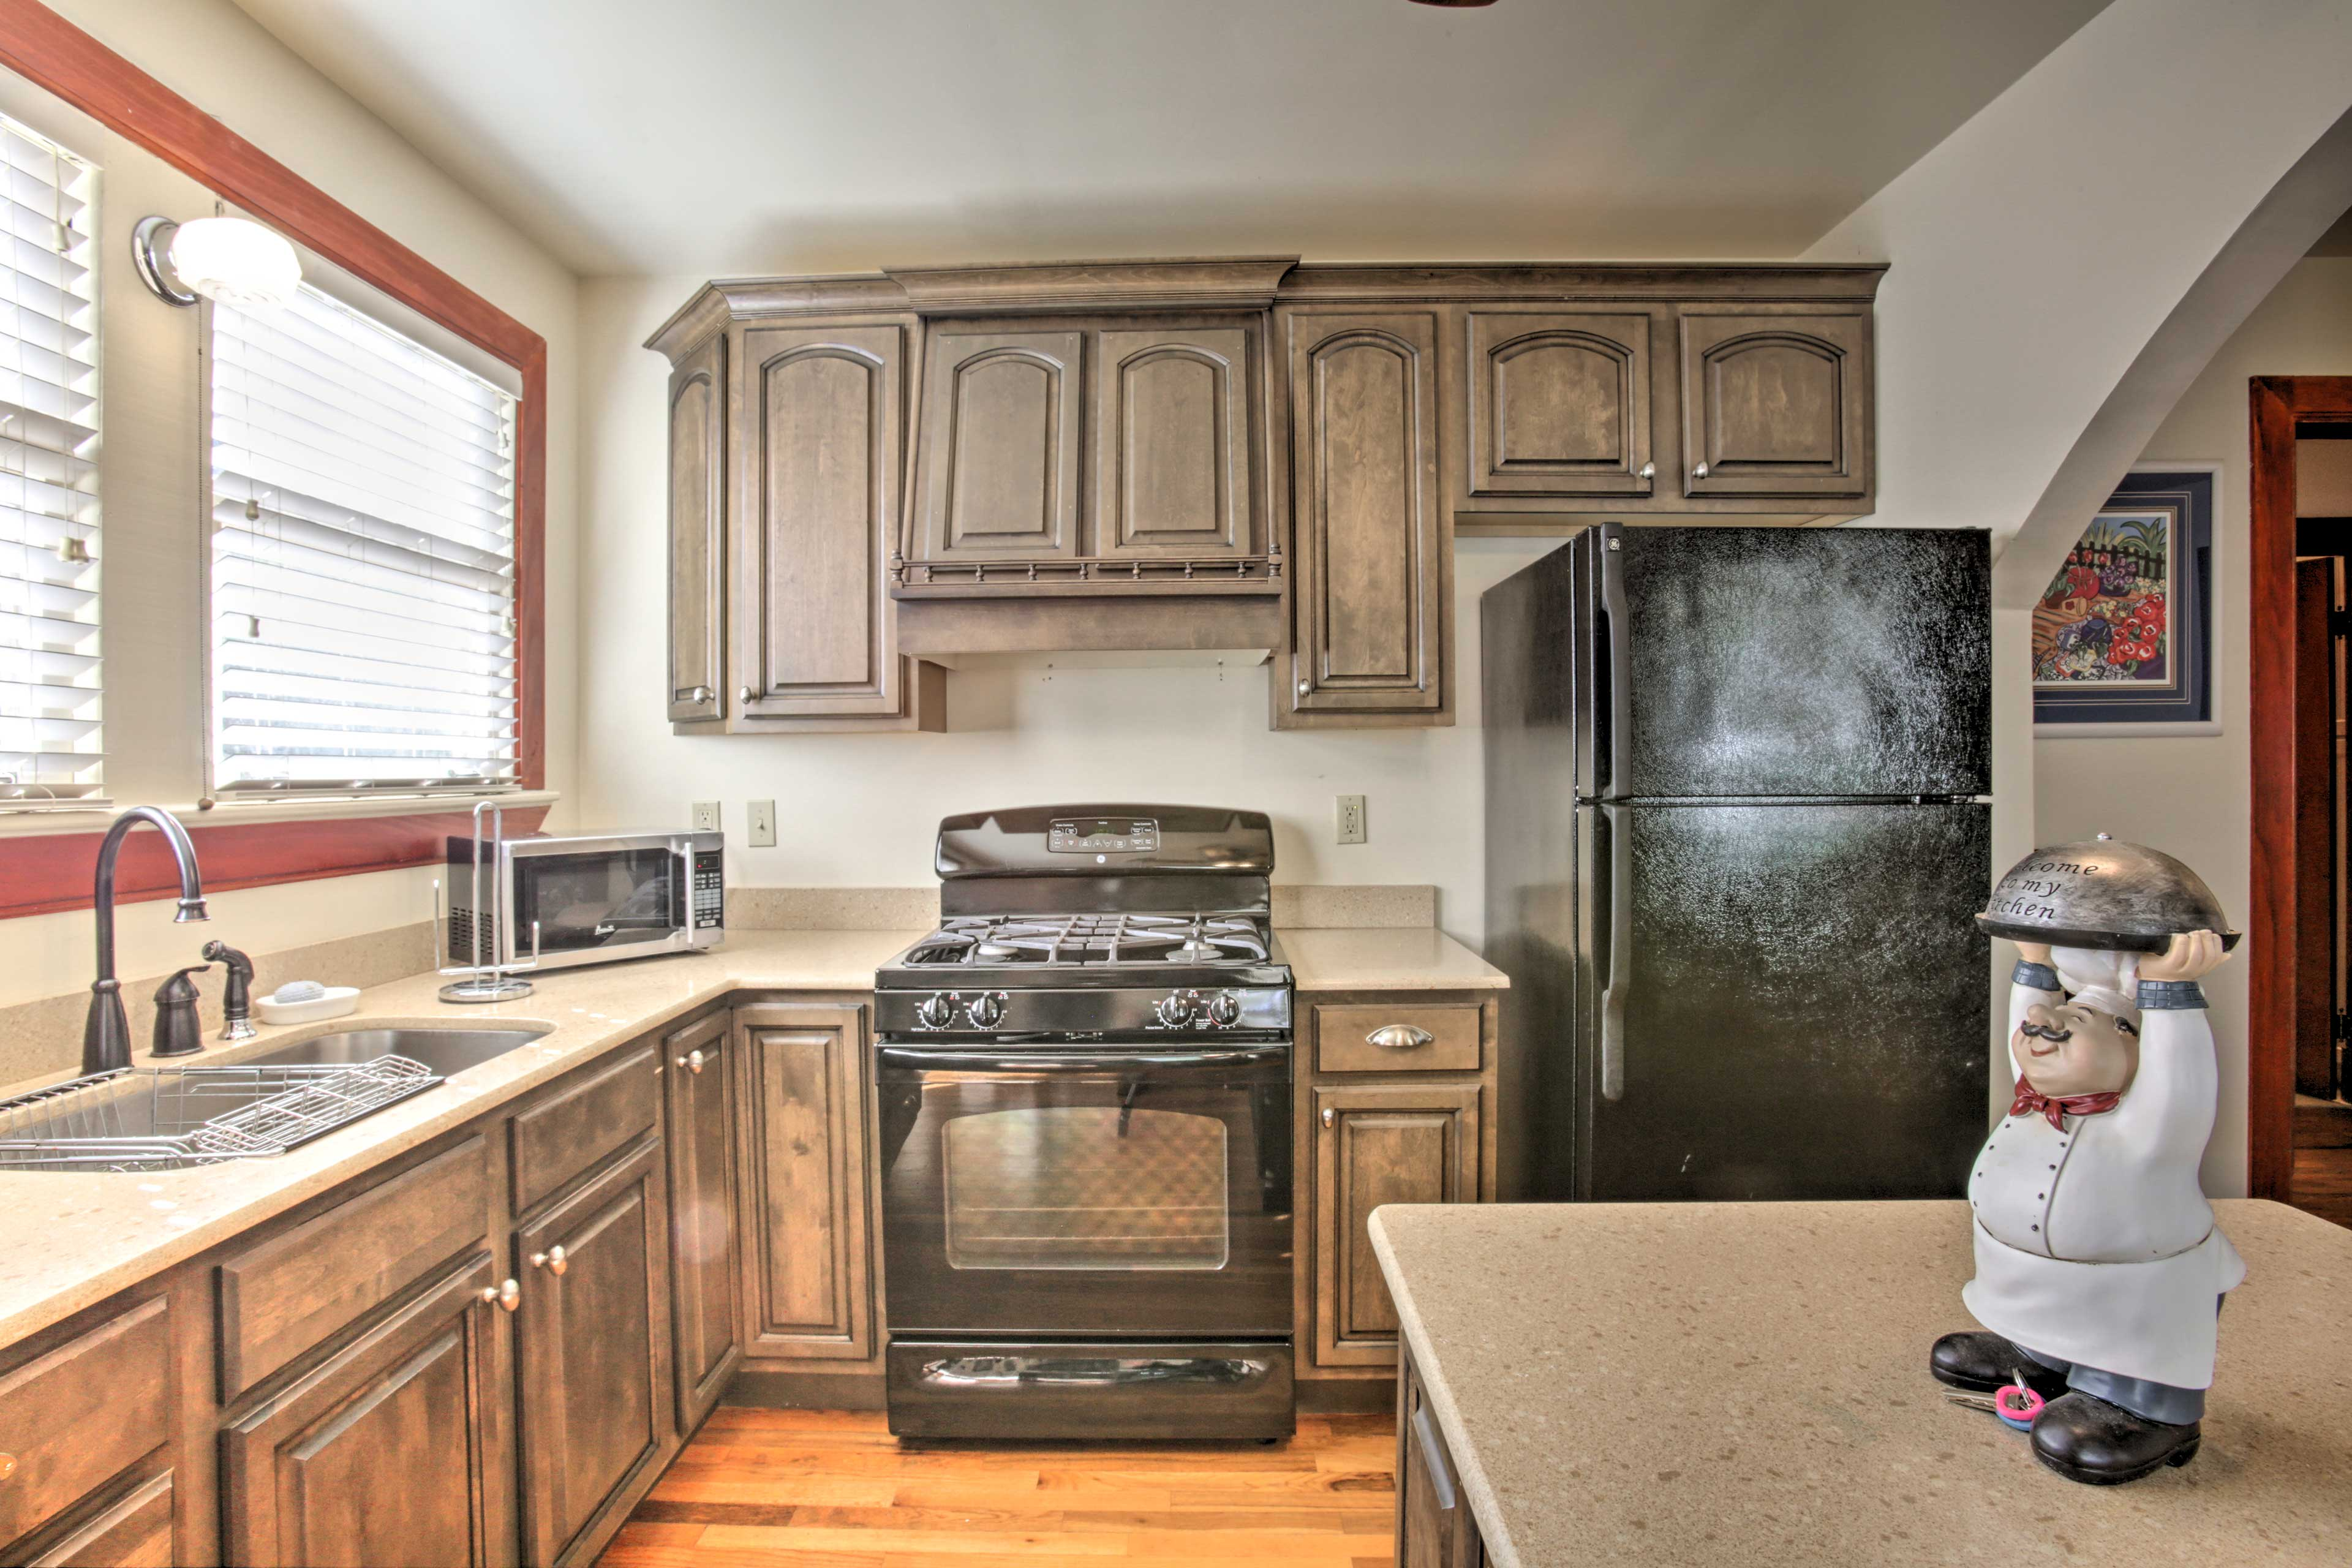 The kitchen features all the modern appliances and cookware you'll need.